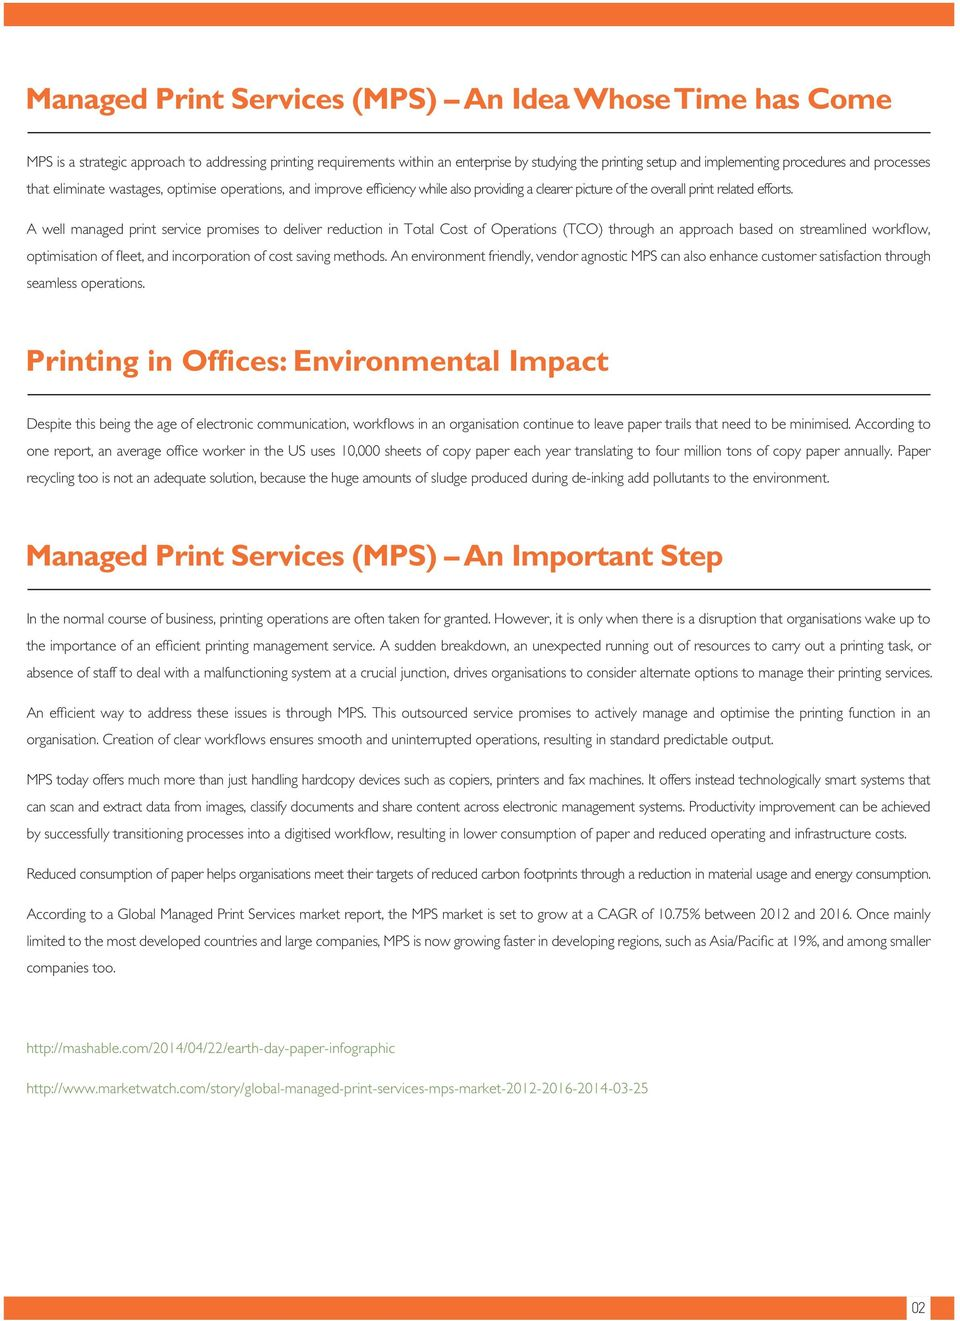 A well managed print service promises to deliver reduction in Total Cost of Operations (TCO) through an approach based on streamlined workflow, optimisation of fleet, and incorporation of cost saving